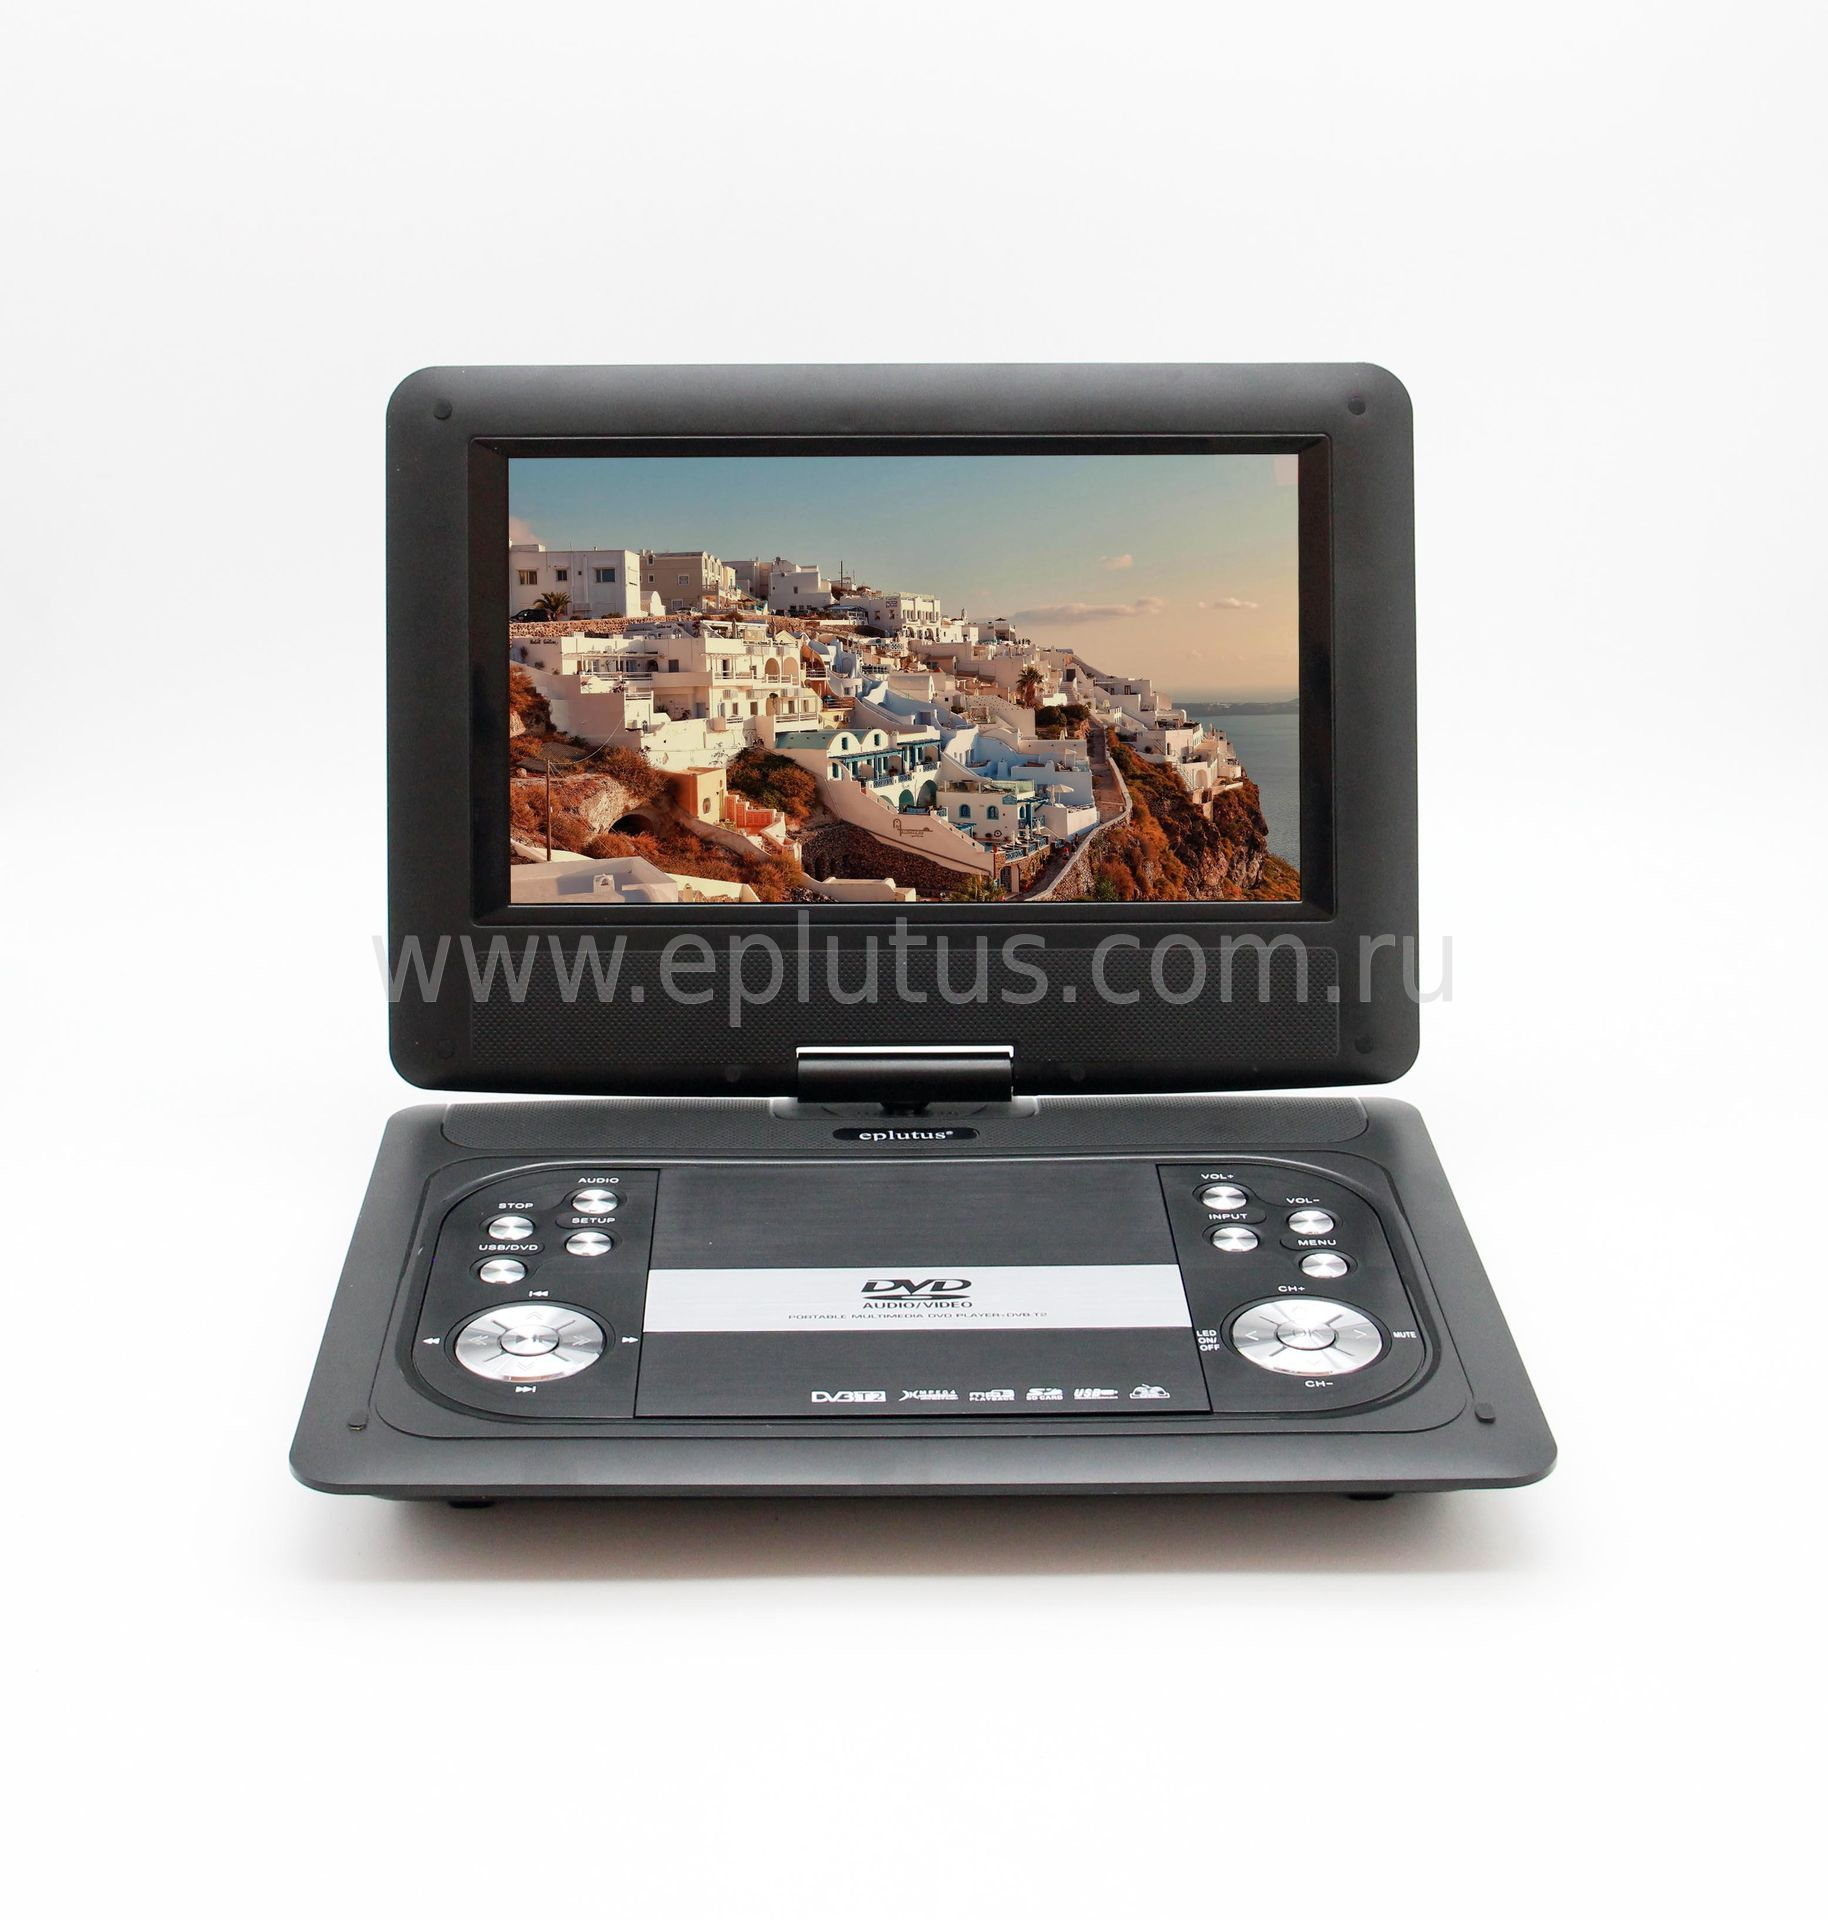 Eplutus EP-1029T автомобильный dvd плеер lg 2 din mazda 5 dvd gps tv 3g wifi bt usb sd 8